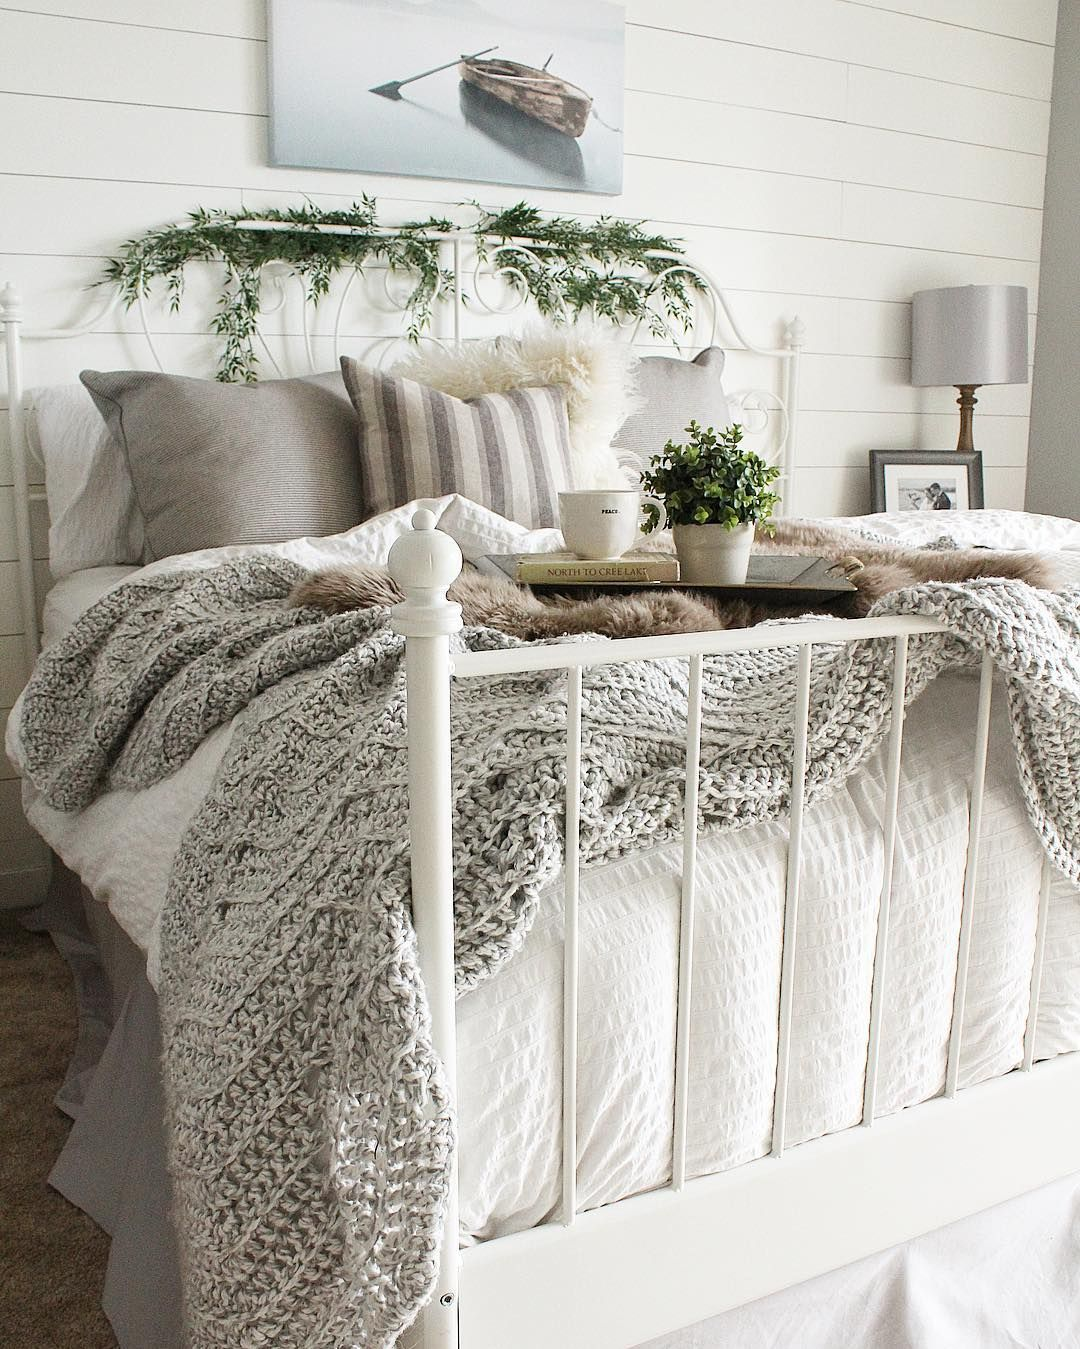 Ikea Schlafzimmer Instagram Farmhouse Bedroom Dale Marie Bloomingdiyer On